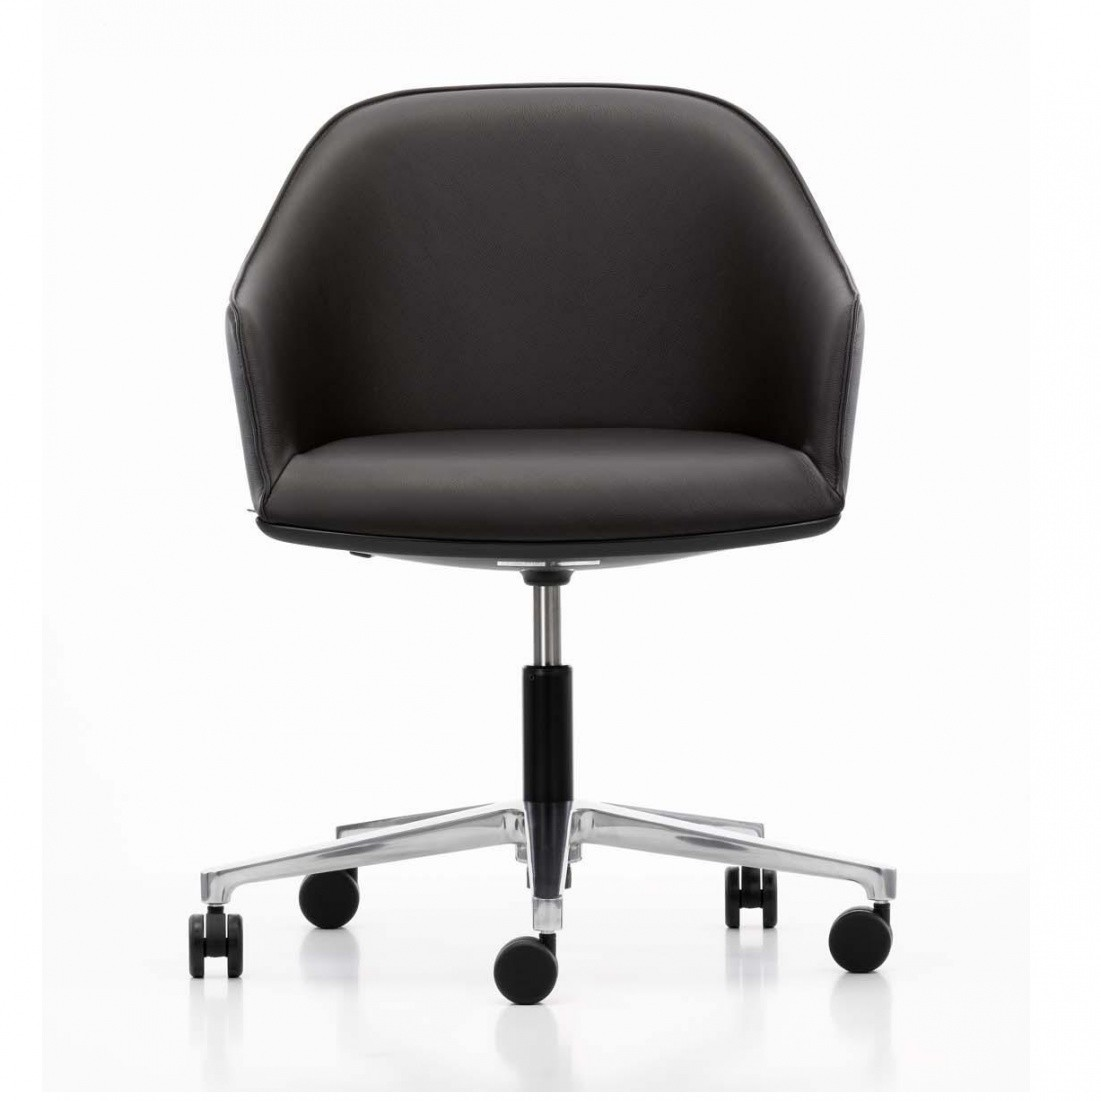 vitra softshell chair chaise de bureau vitra. Black Bedroom Furniture Sets. Home Design Ideas